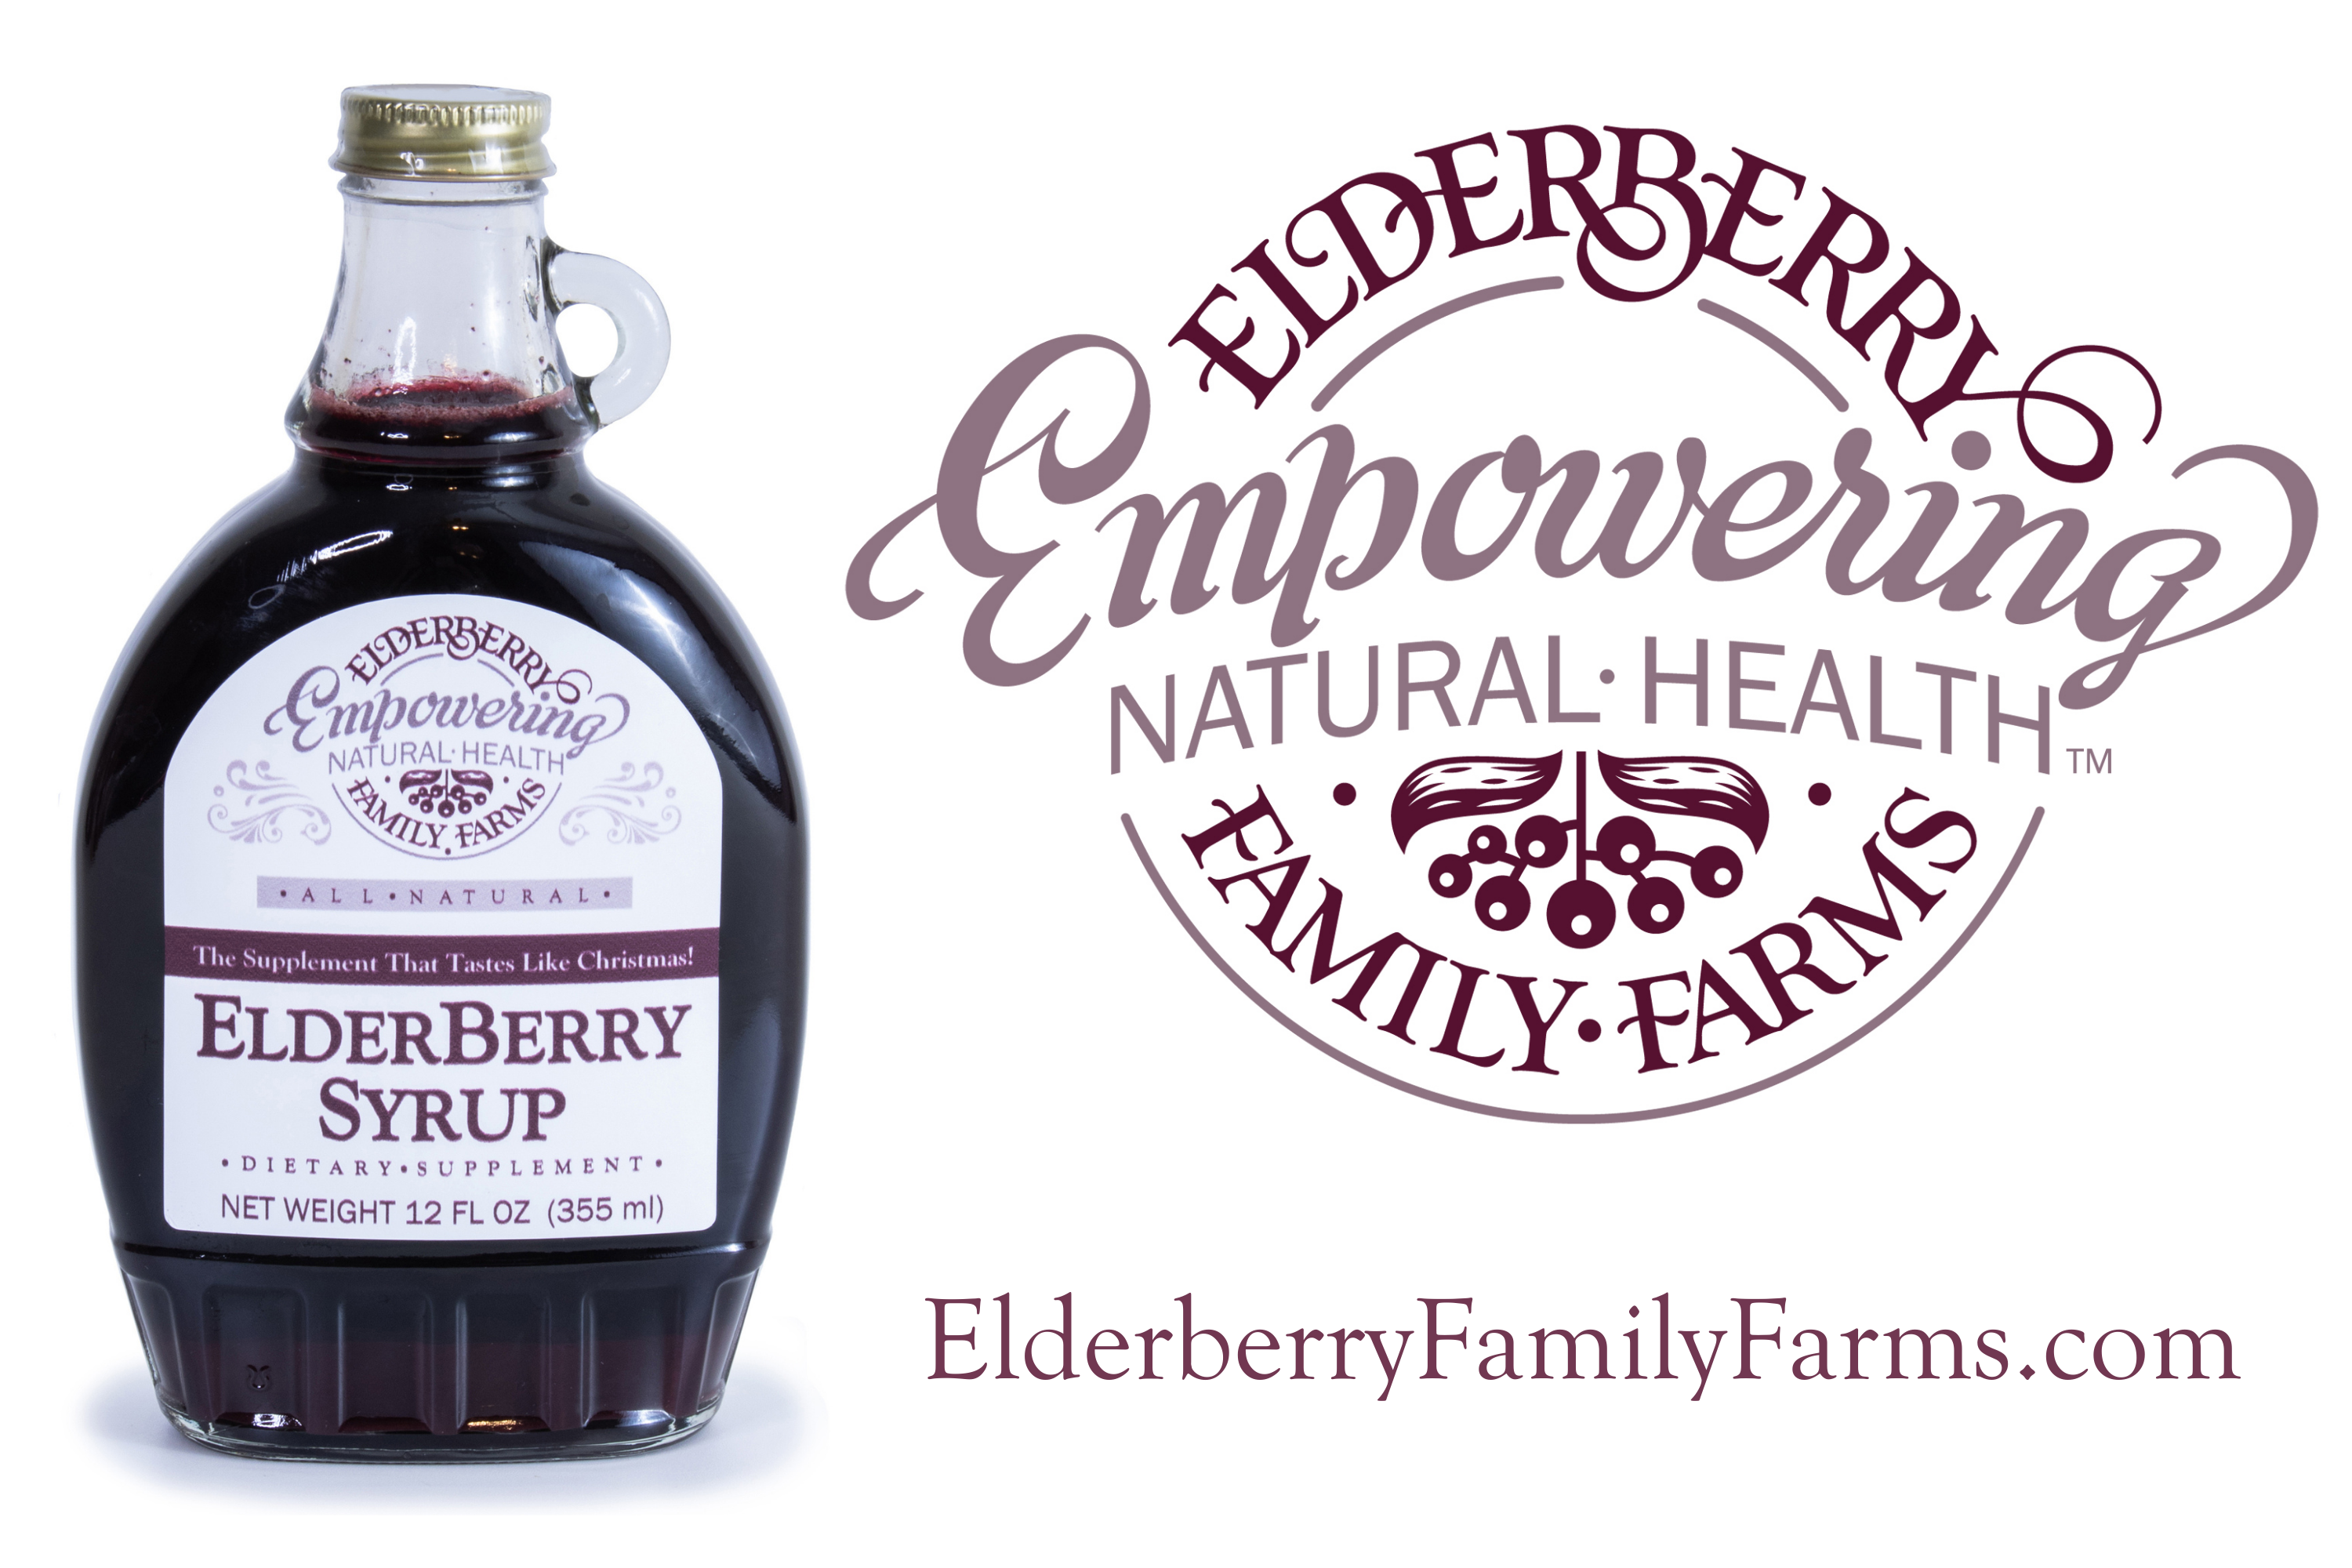 Elderberry Family Farms is utilizing Mr. Checkout's Fast Track Program to reach Independent Grocery Stores Nationwide.